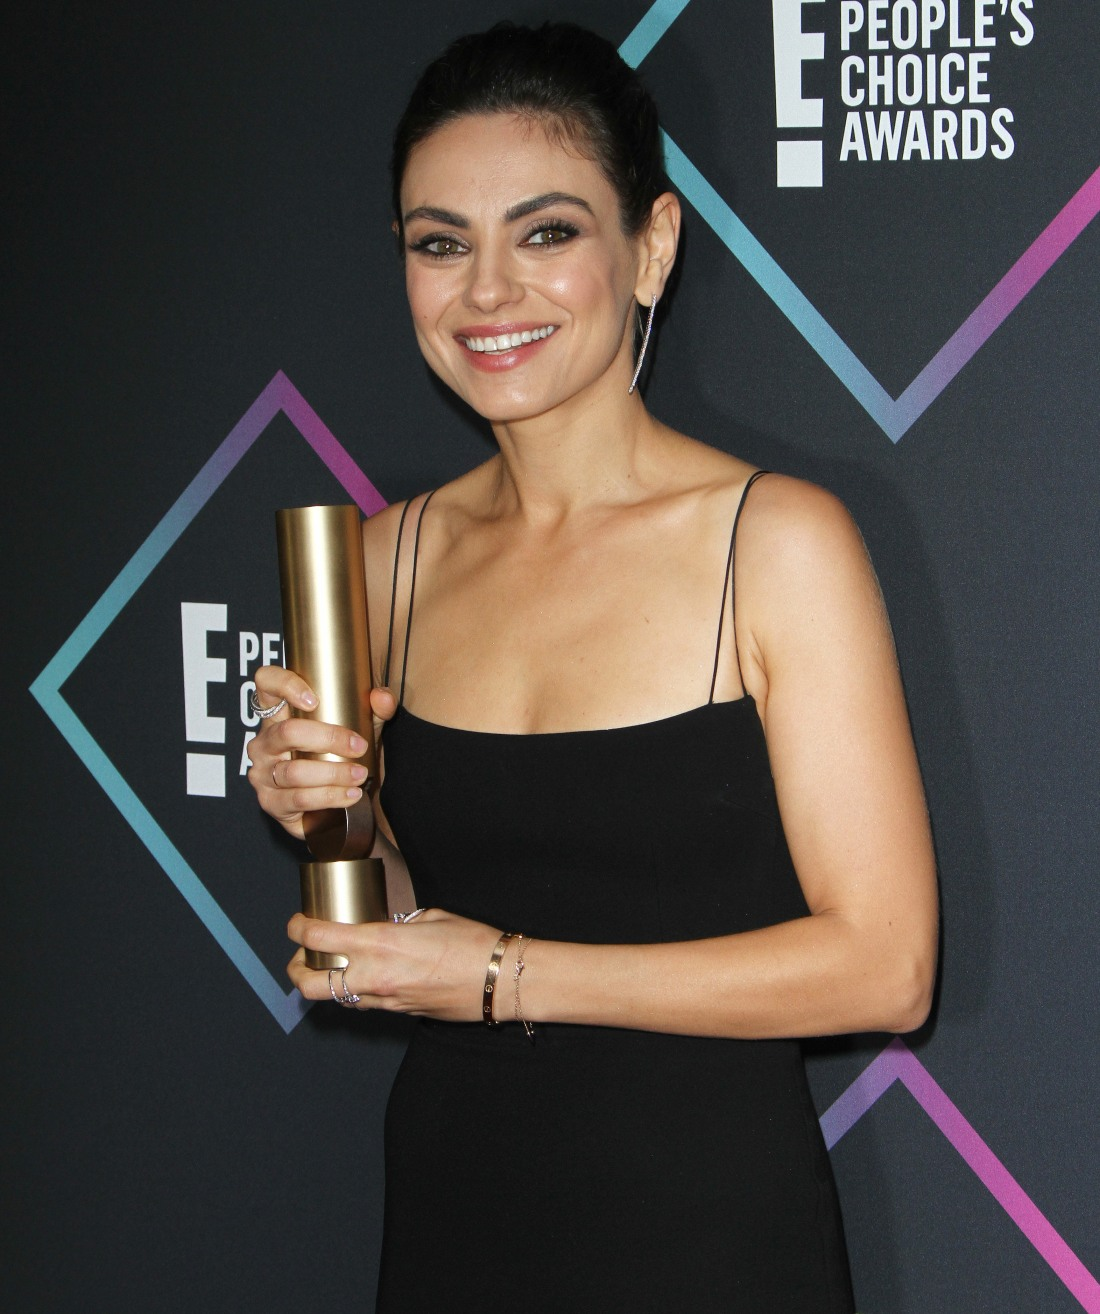 Mila Kunis attends The People's Choice Awards 2018 - Press Room in Los Angeles